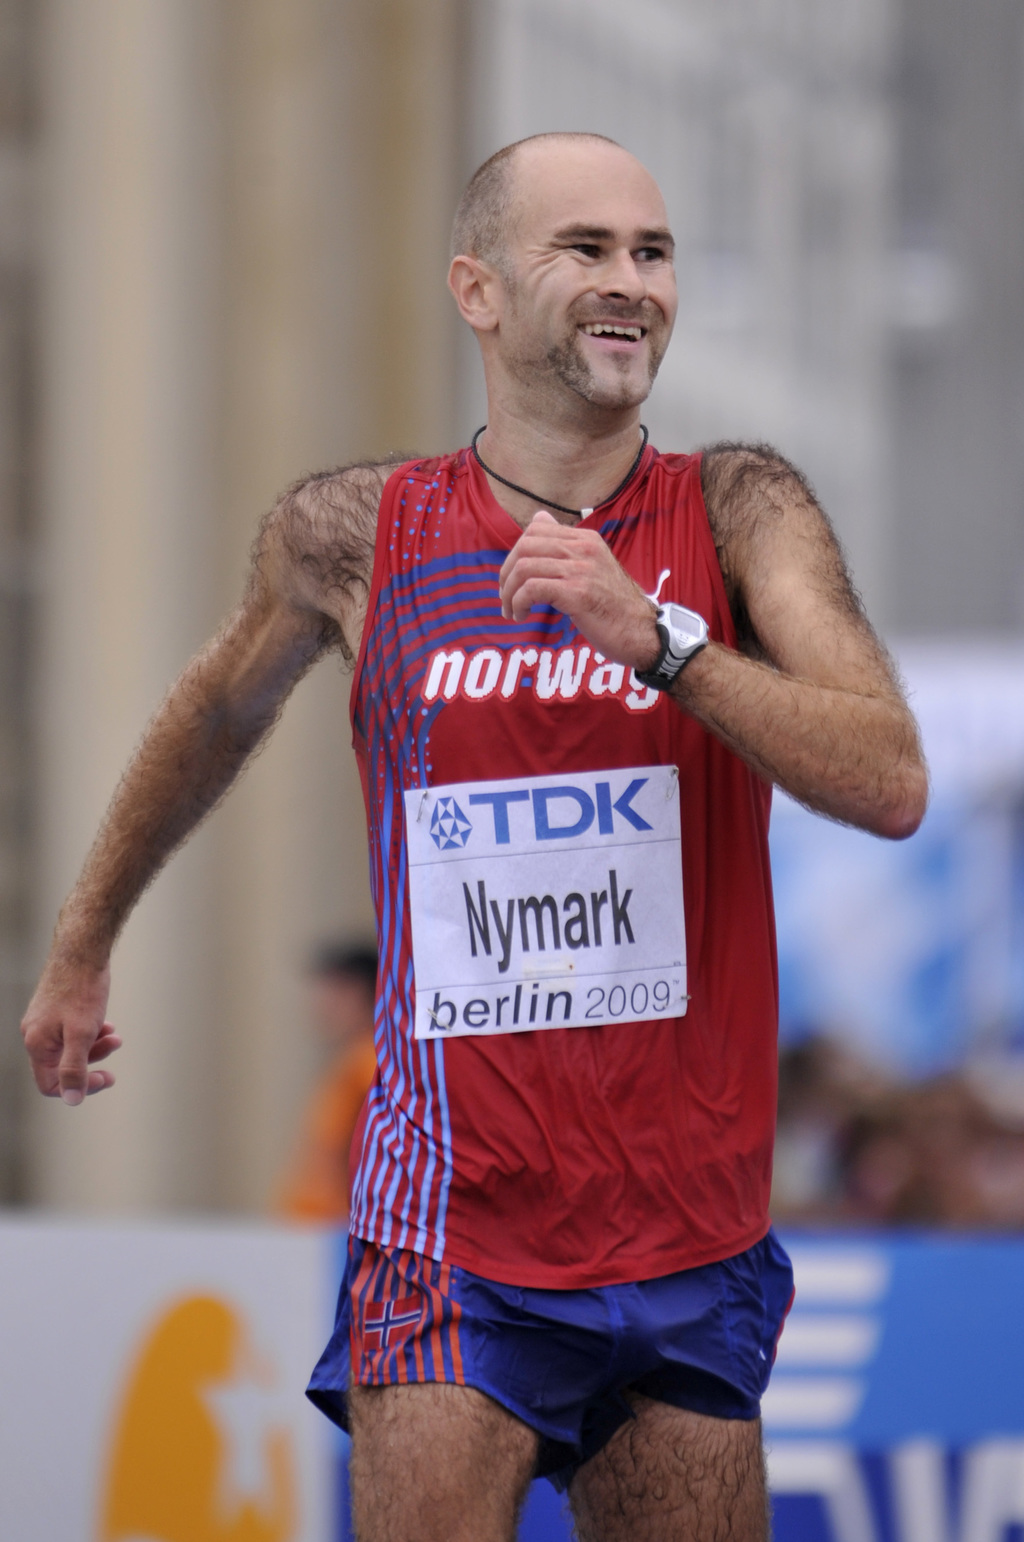 FILE - In this Friday, Aug. 21, 2009 file photo, Norway's Trond Nymark reacts as he crosses the finish line to win silver at the Men's ...